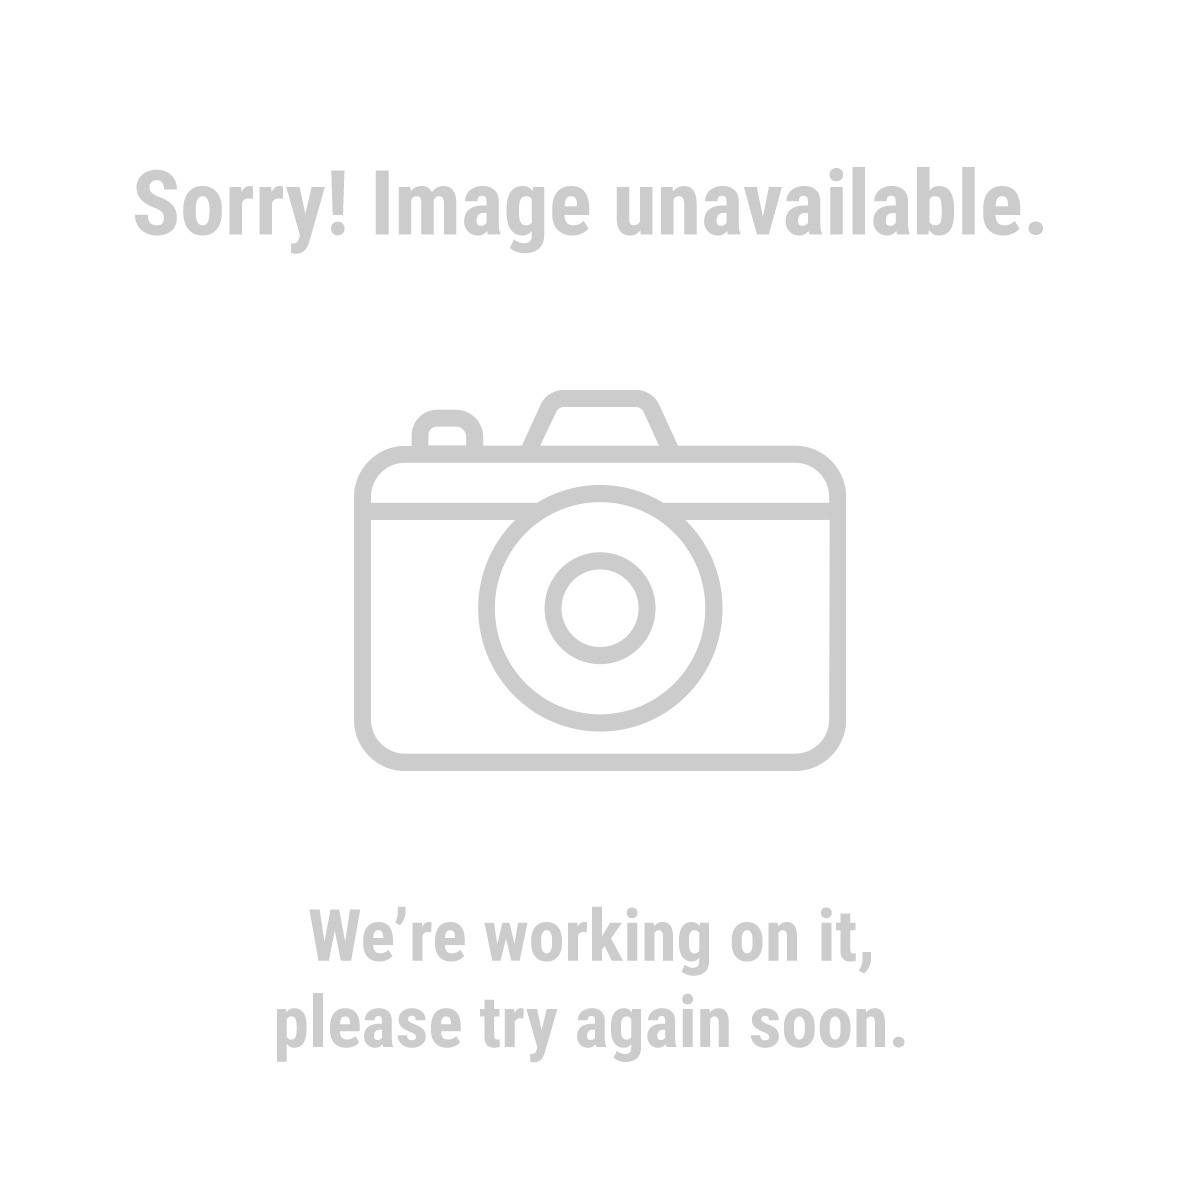 HFT 61607 Anti-Fatigue Foam Mat Set 4 Pc